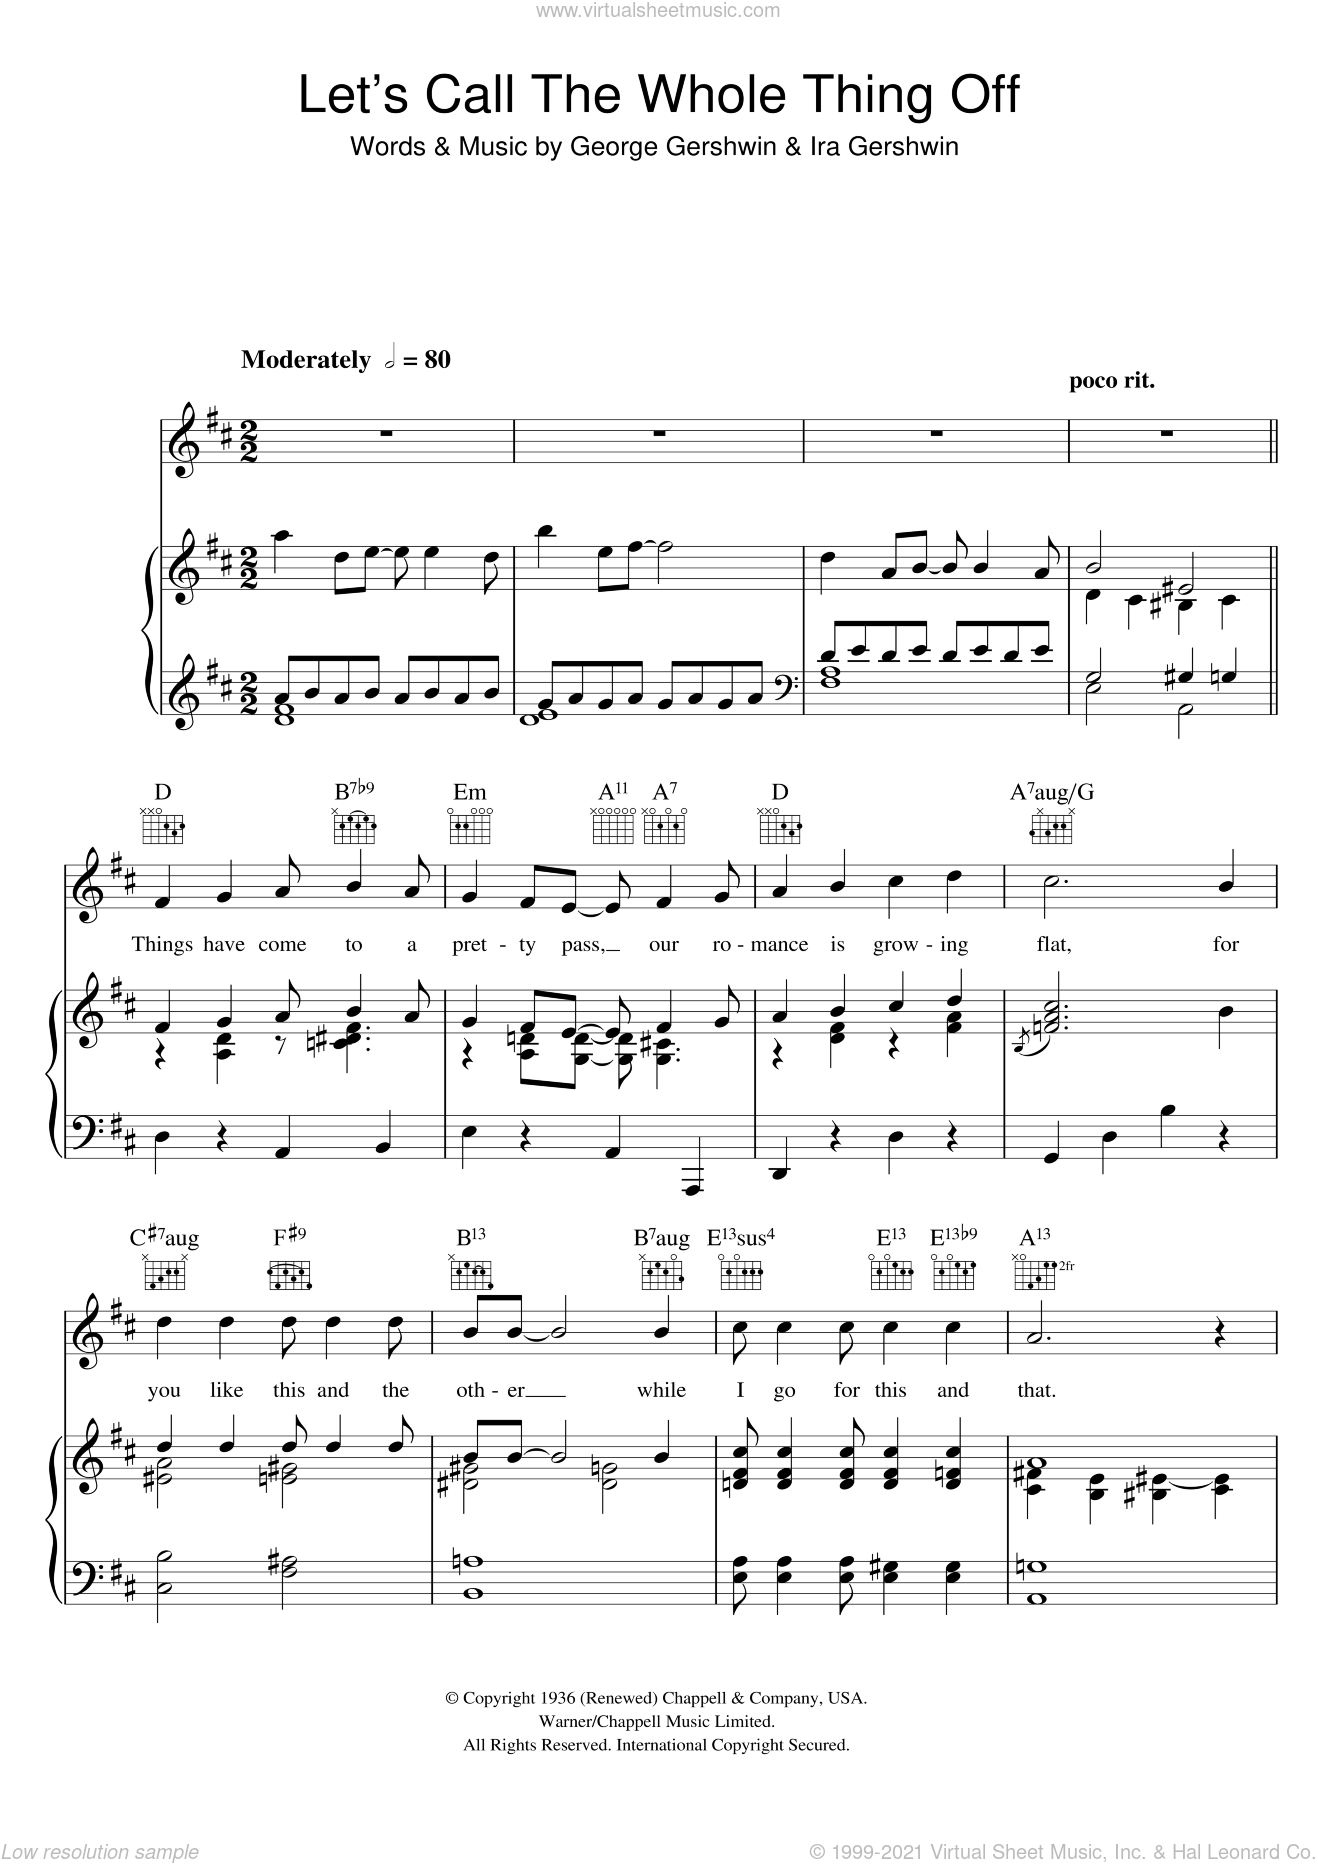 Let's Call The Whole Thing Off sheet music for voice, piano or guitar by Ira Gershwin